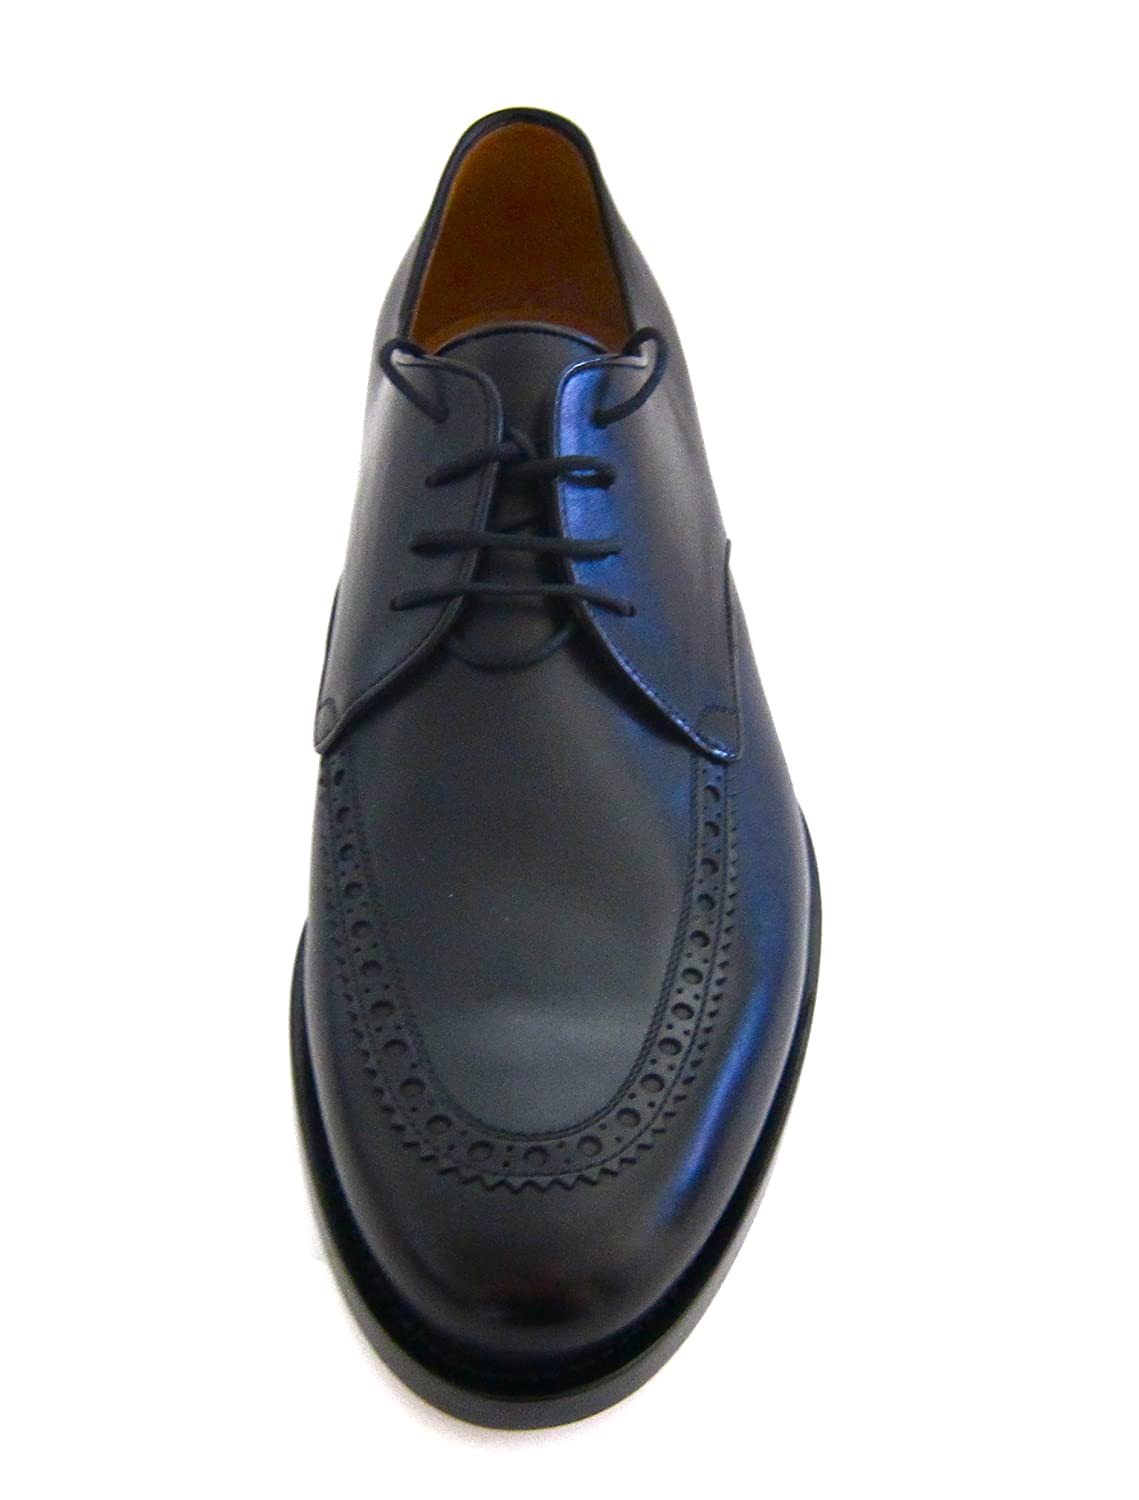 f6519782d85b3 Amazon.com: Gucci Mens Betis Matt Black Leather Oxfords Shoes Made ...